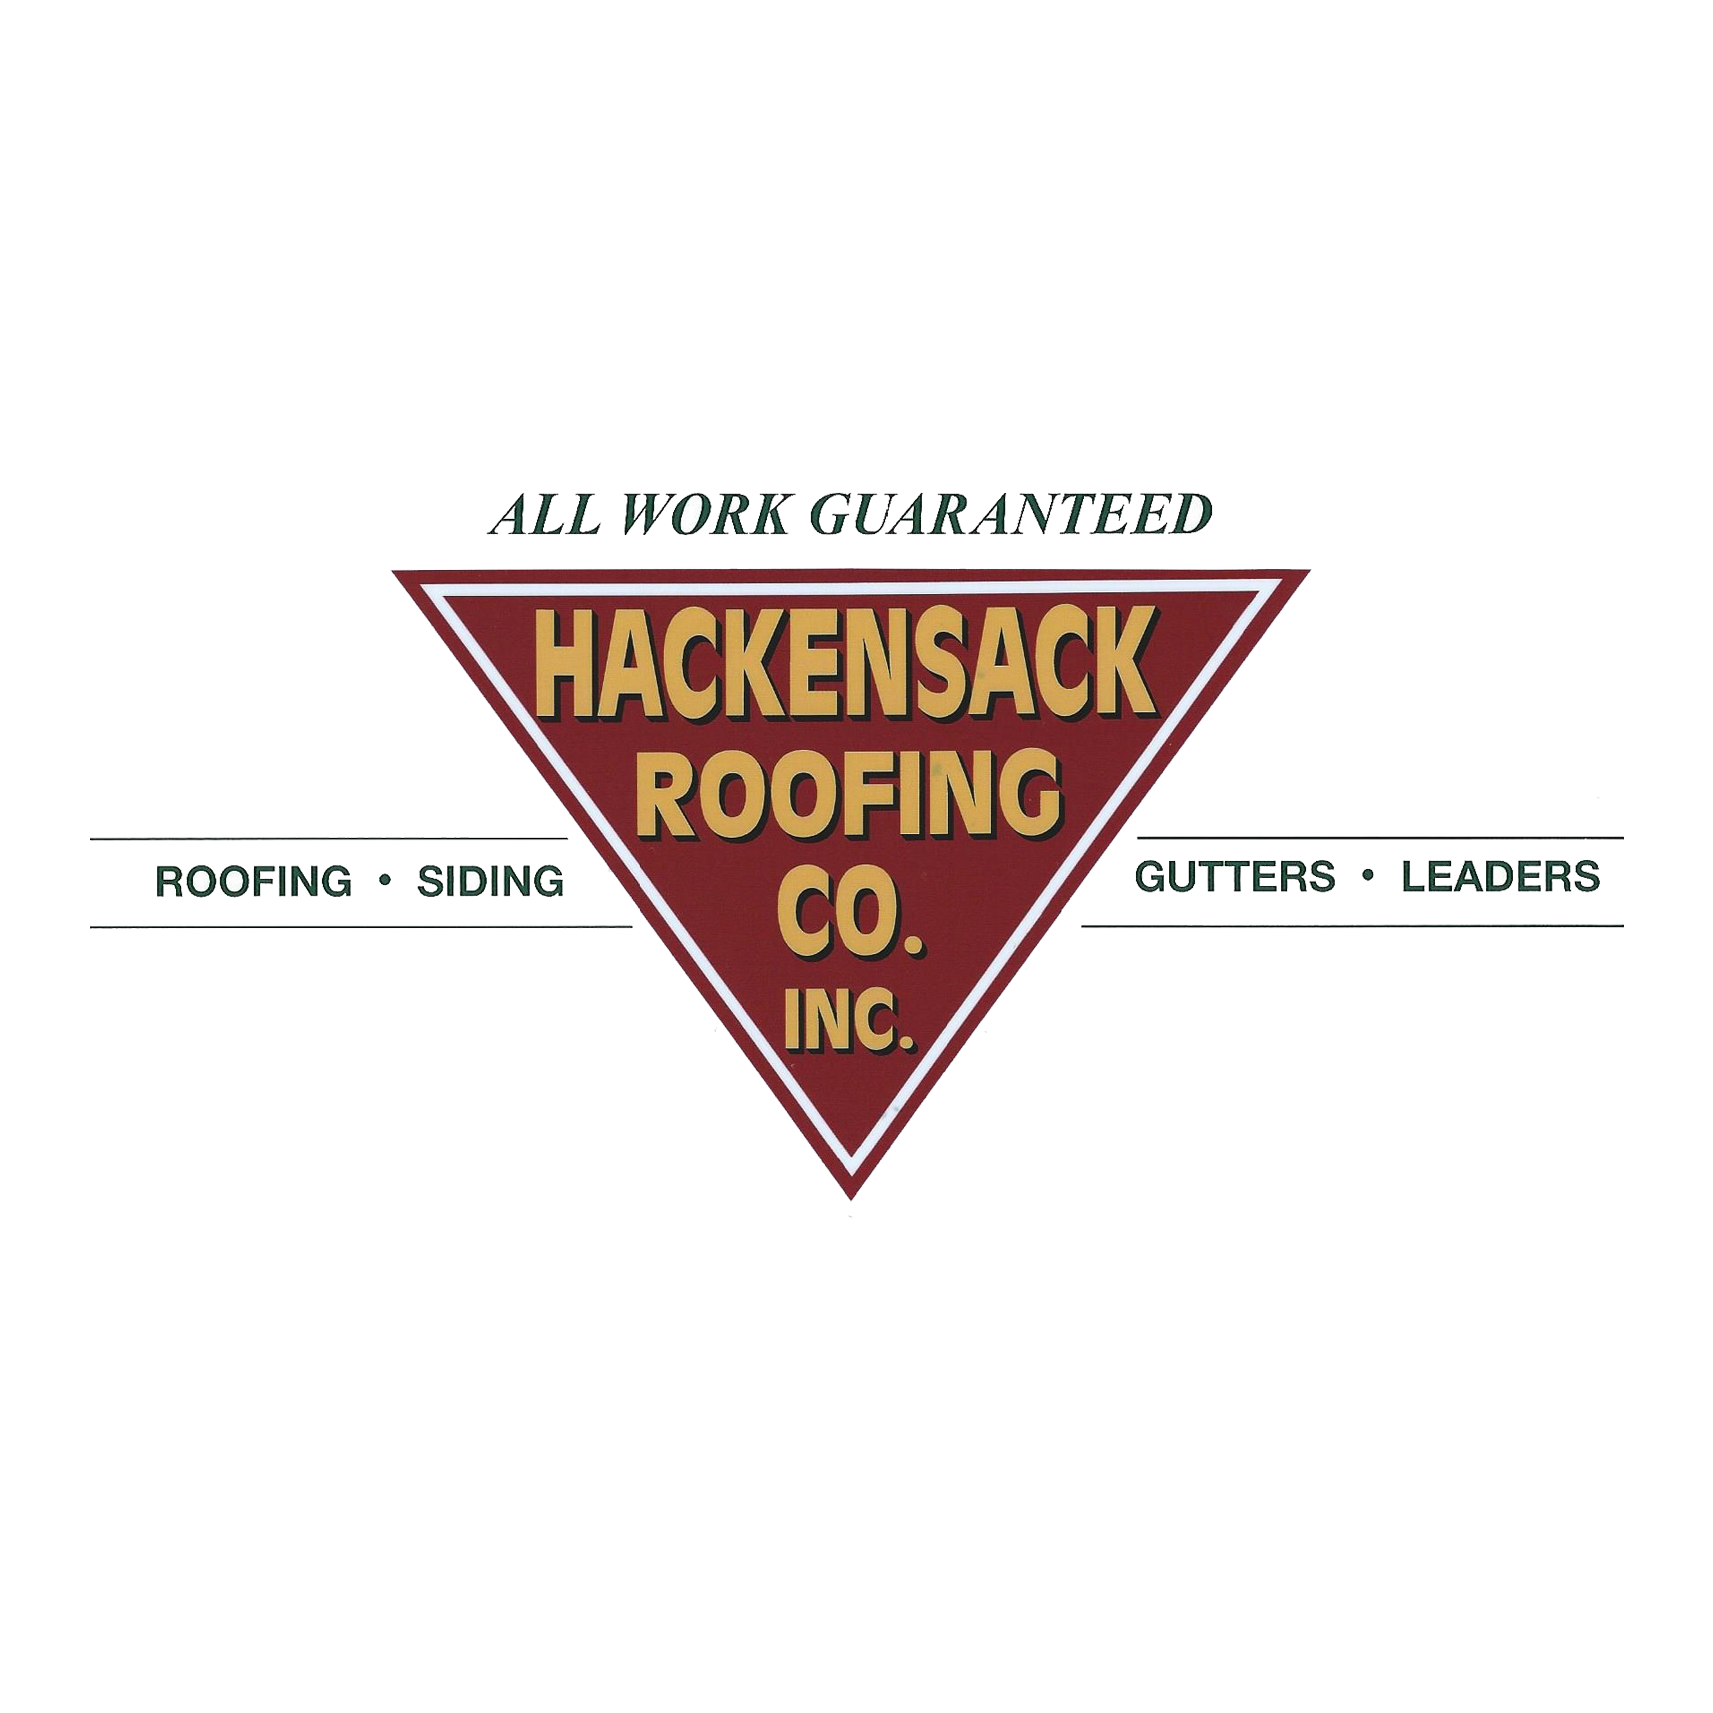 Hackensack Roofing Co